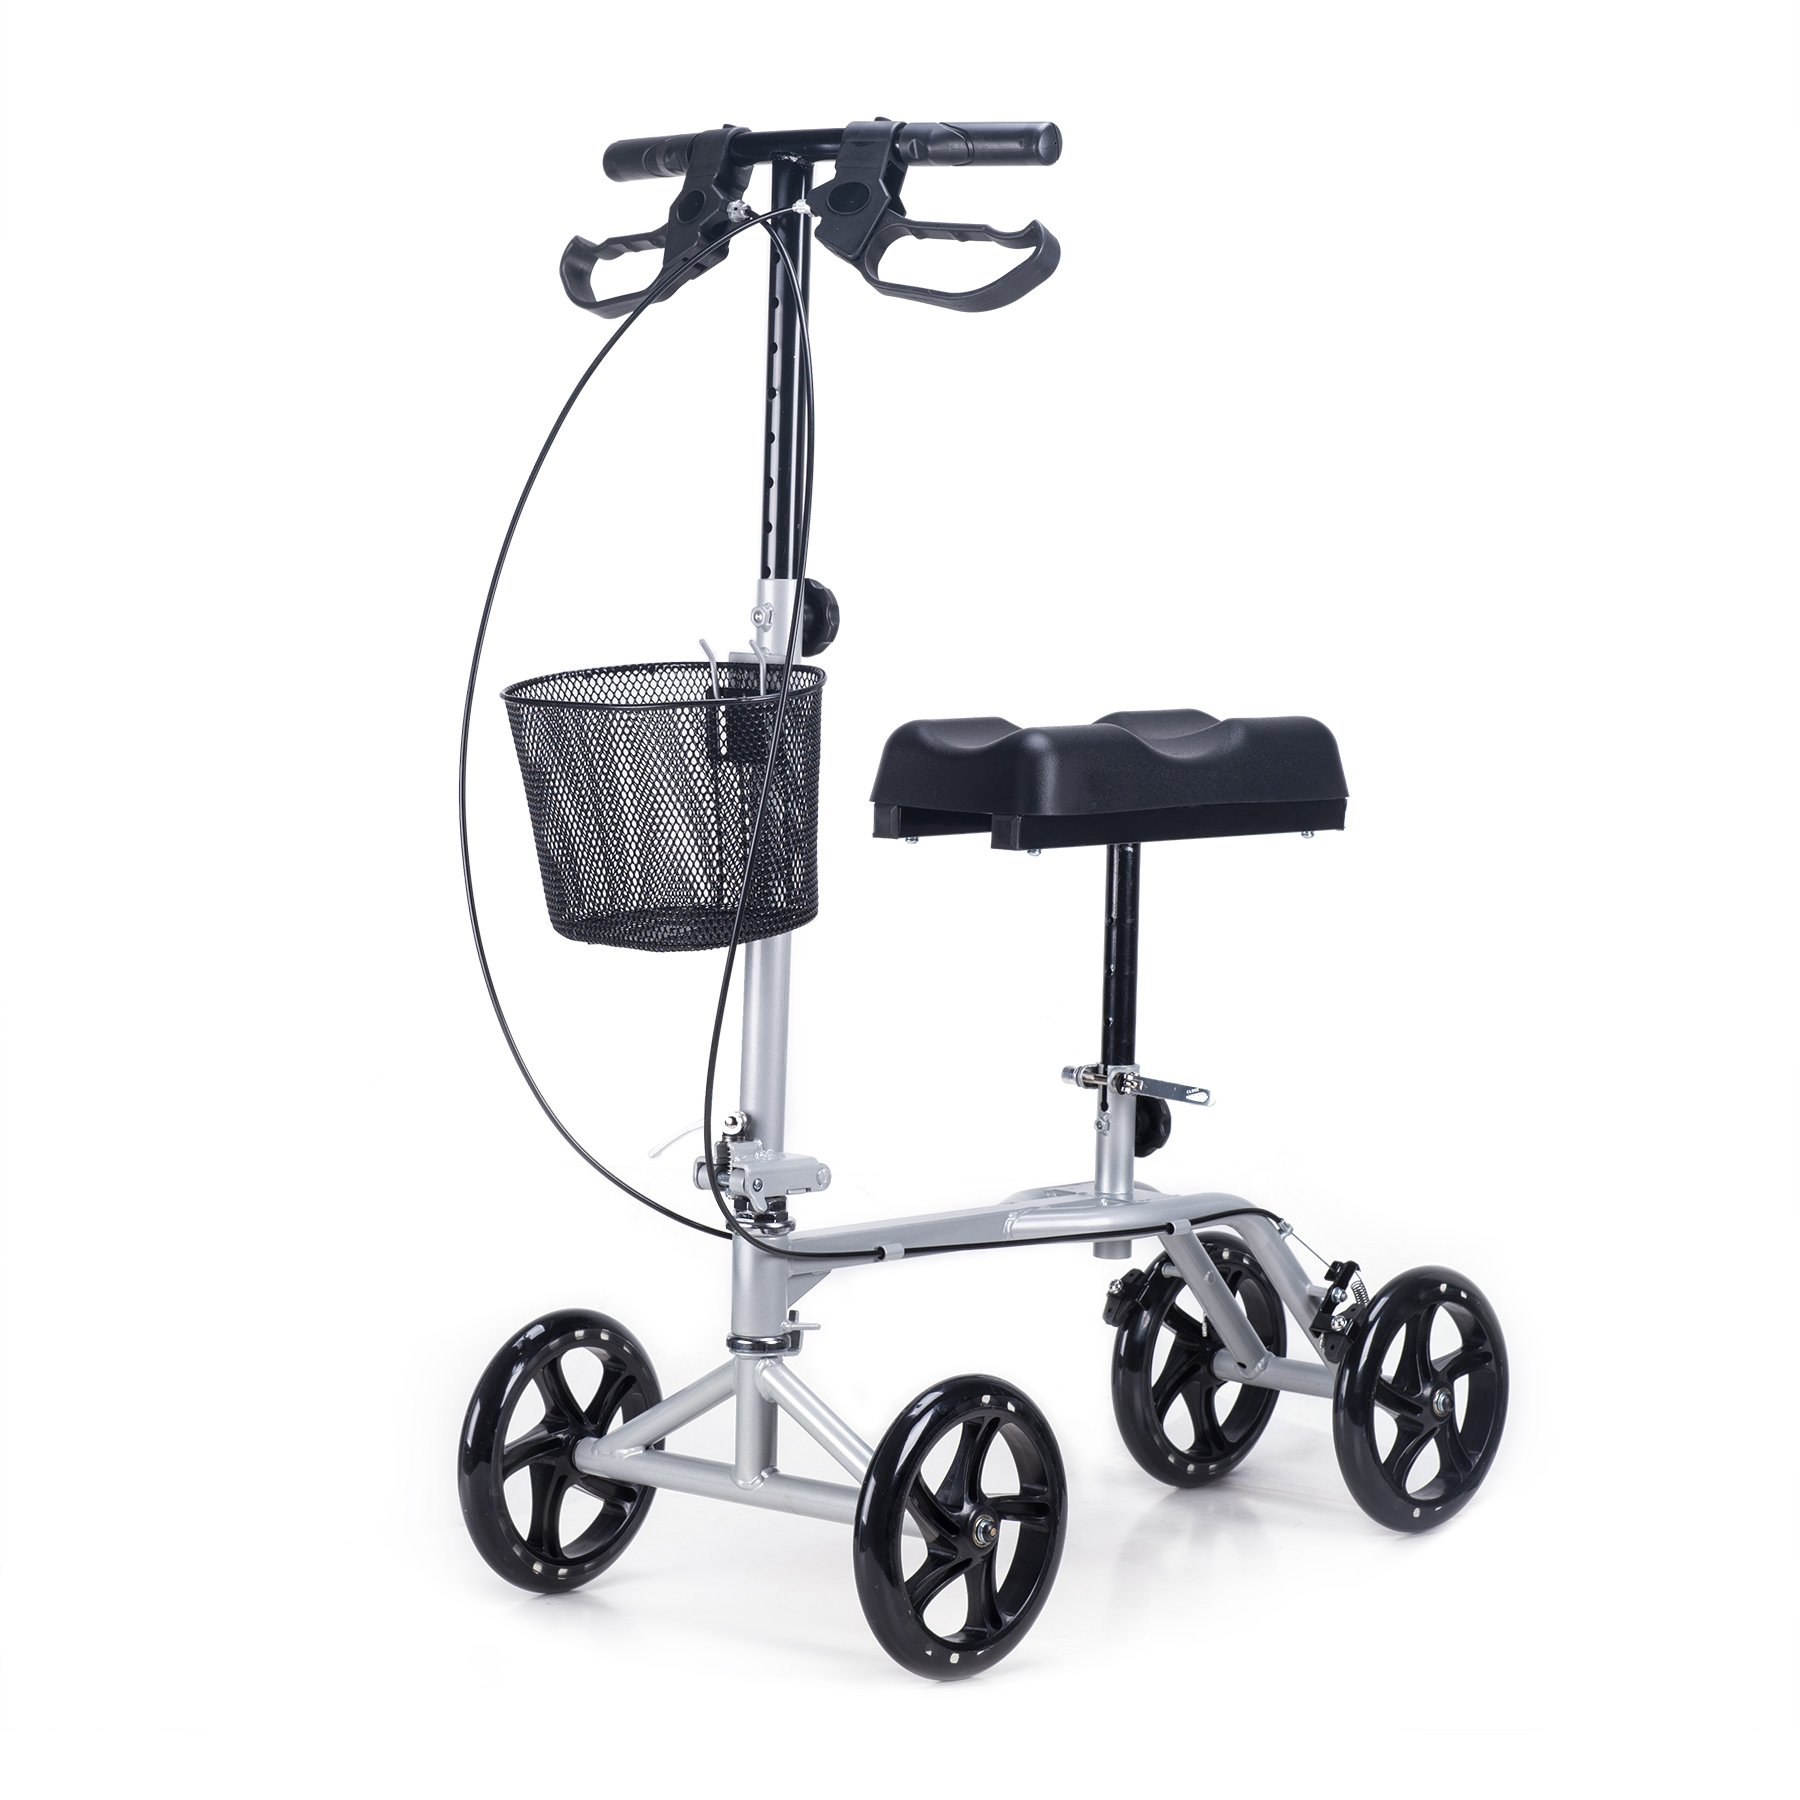 CO-Z Steerable Foldable Knee Walker Roller Scooter with Basket, 8'' Antiskid Rubber Wheels, Safety Double Brakes, Leg Walker Crutch (Silver)